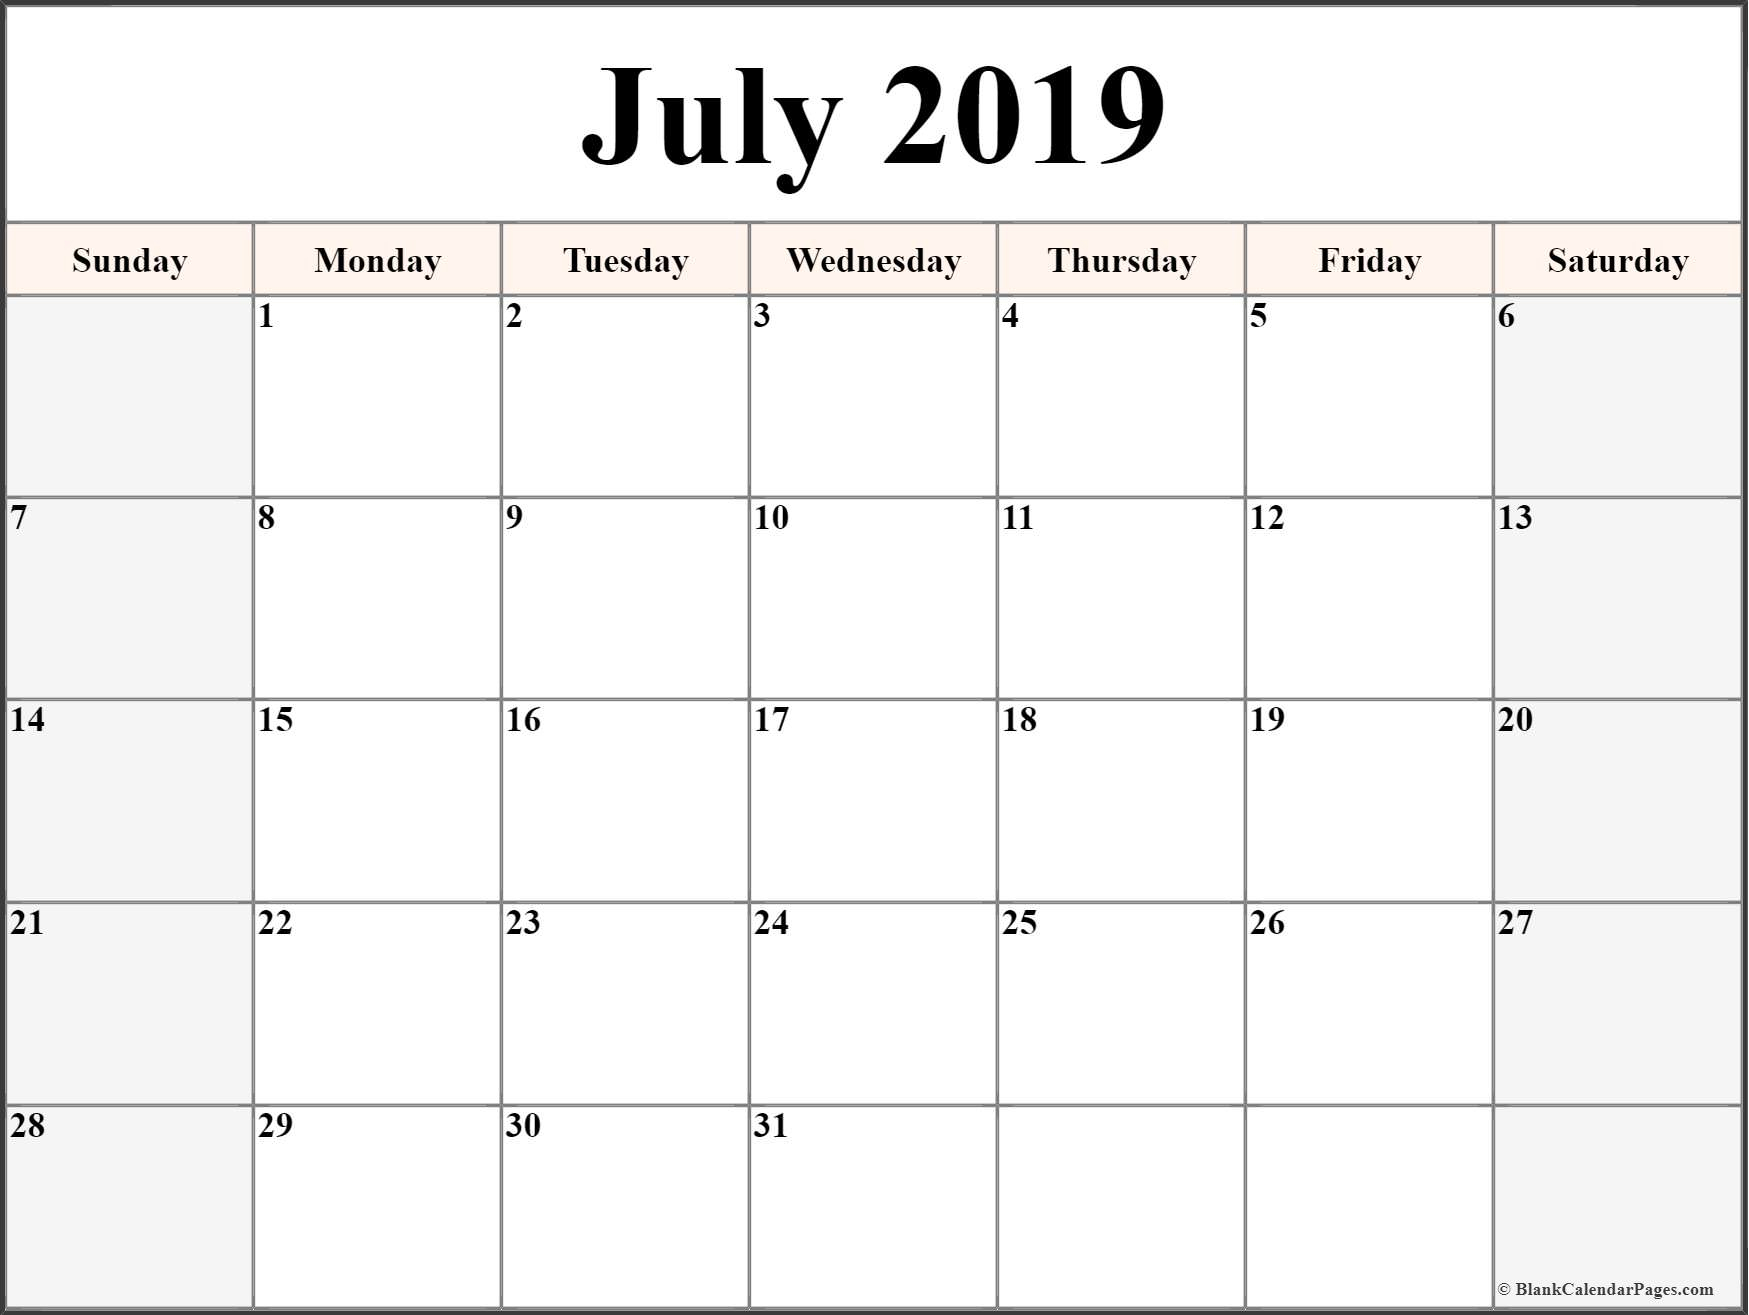 July 2019 Blank Calendar Collection.